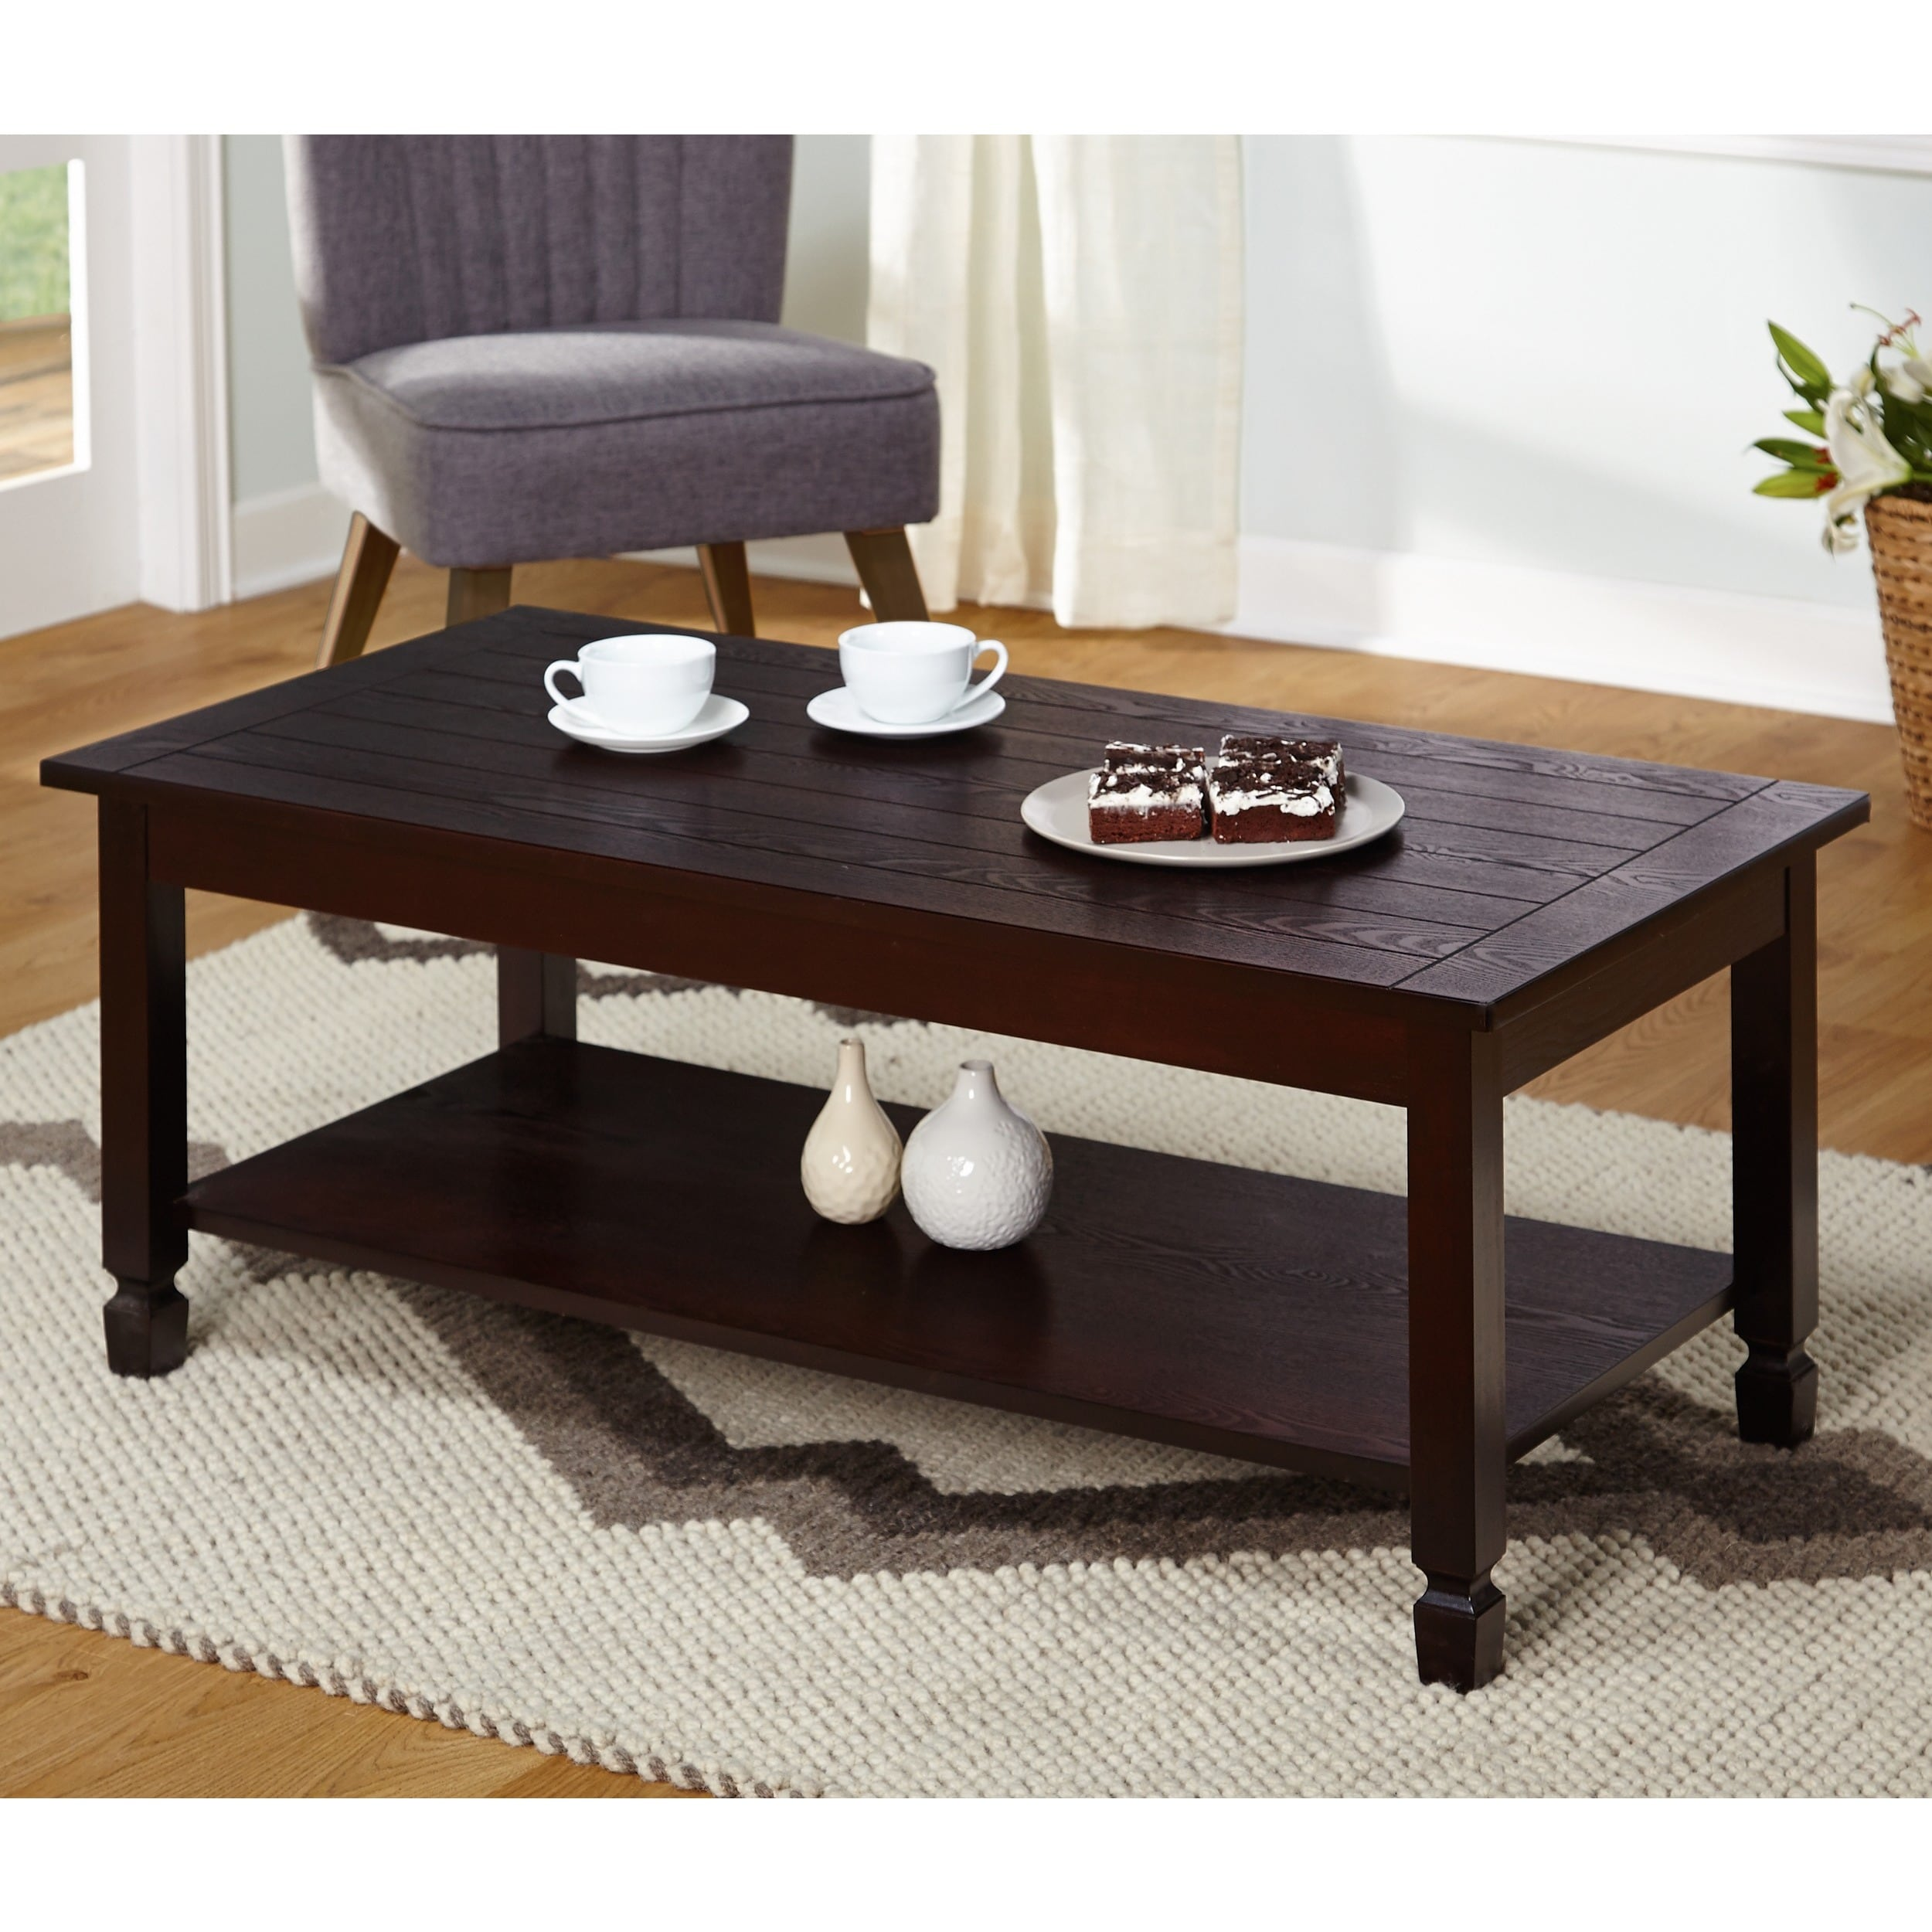 Modern Storage Coffee Table 2500 x 2500